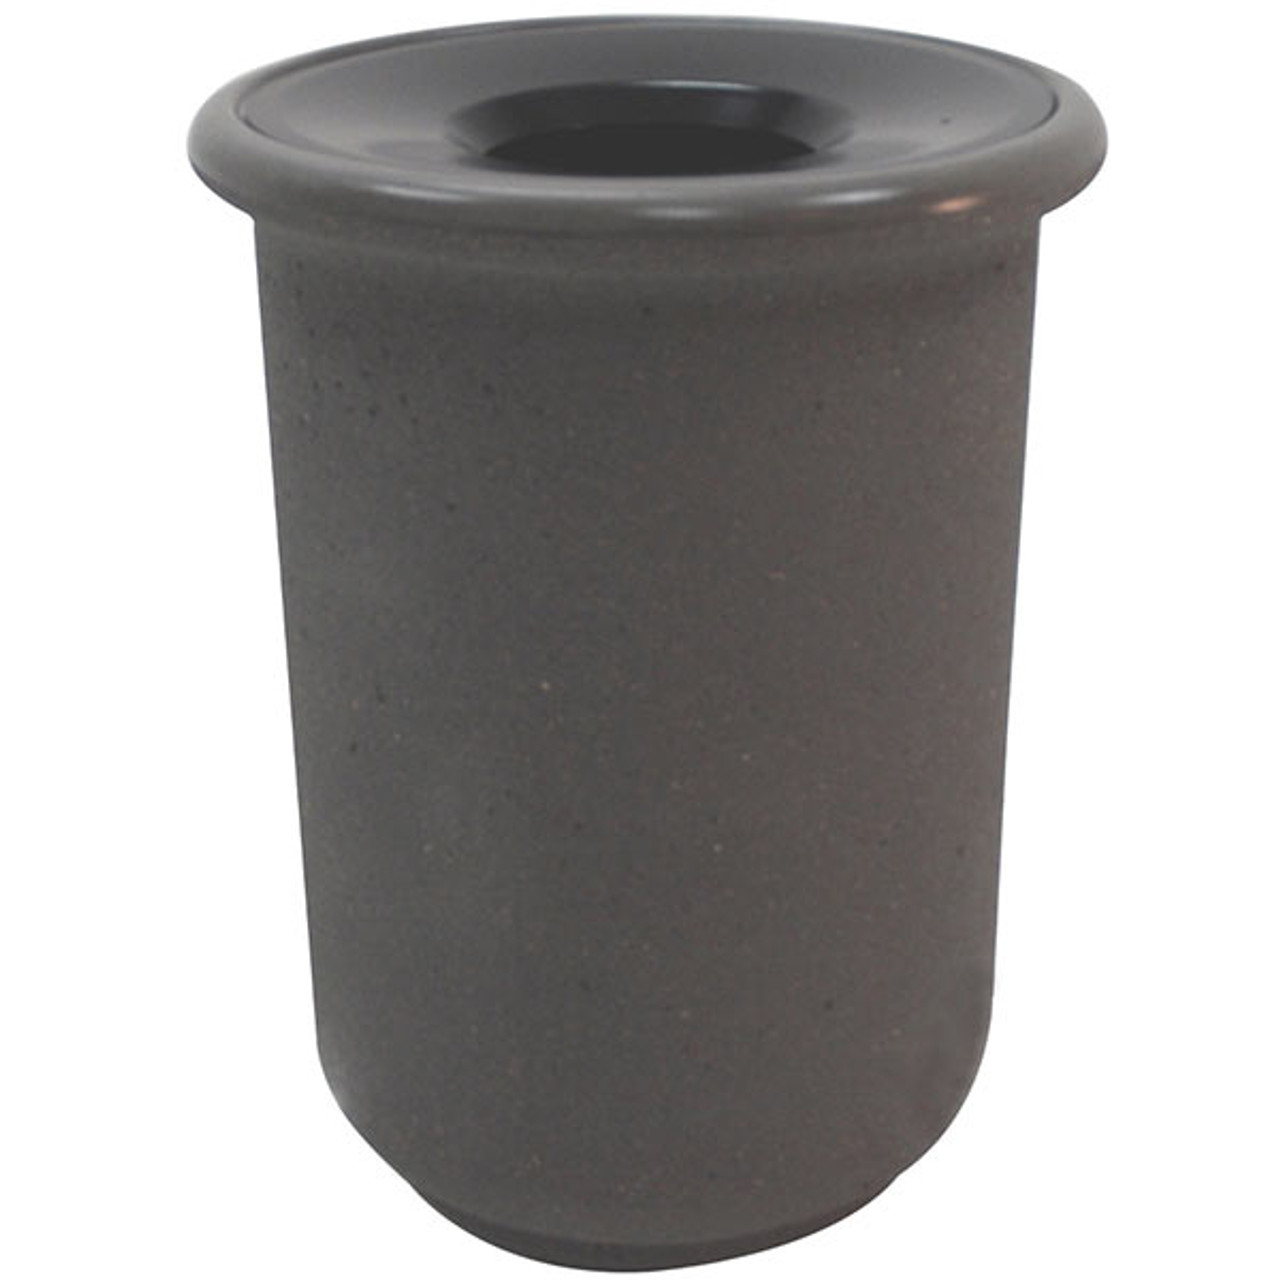 25 Gallon Concrete Funnel Top Outdoor Waste Container TF1105 Weatherstone Charcoal